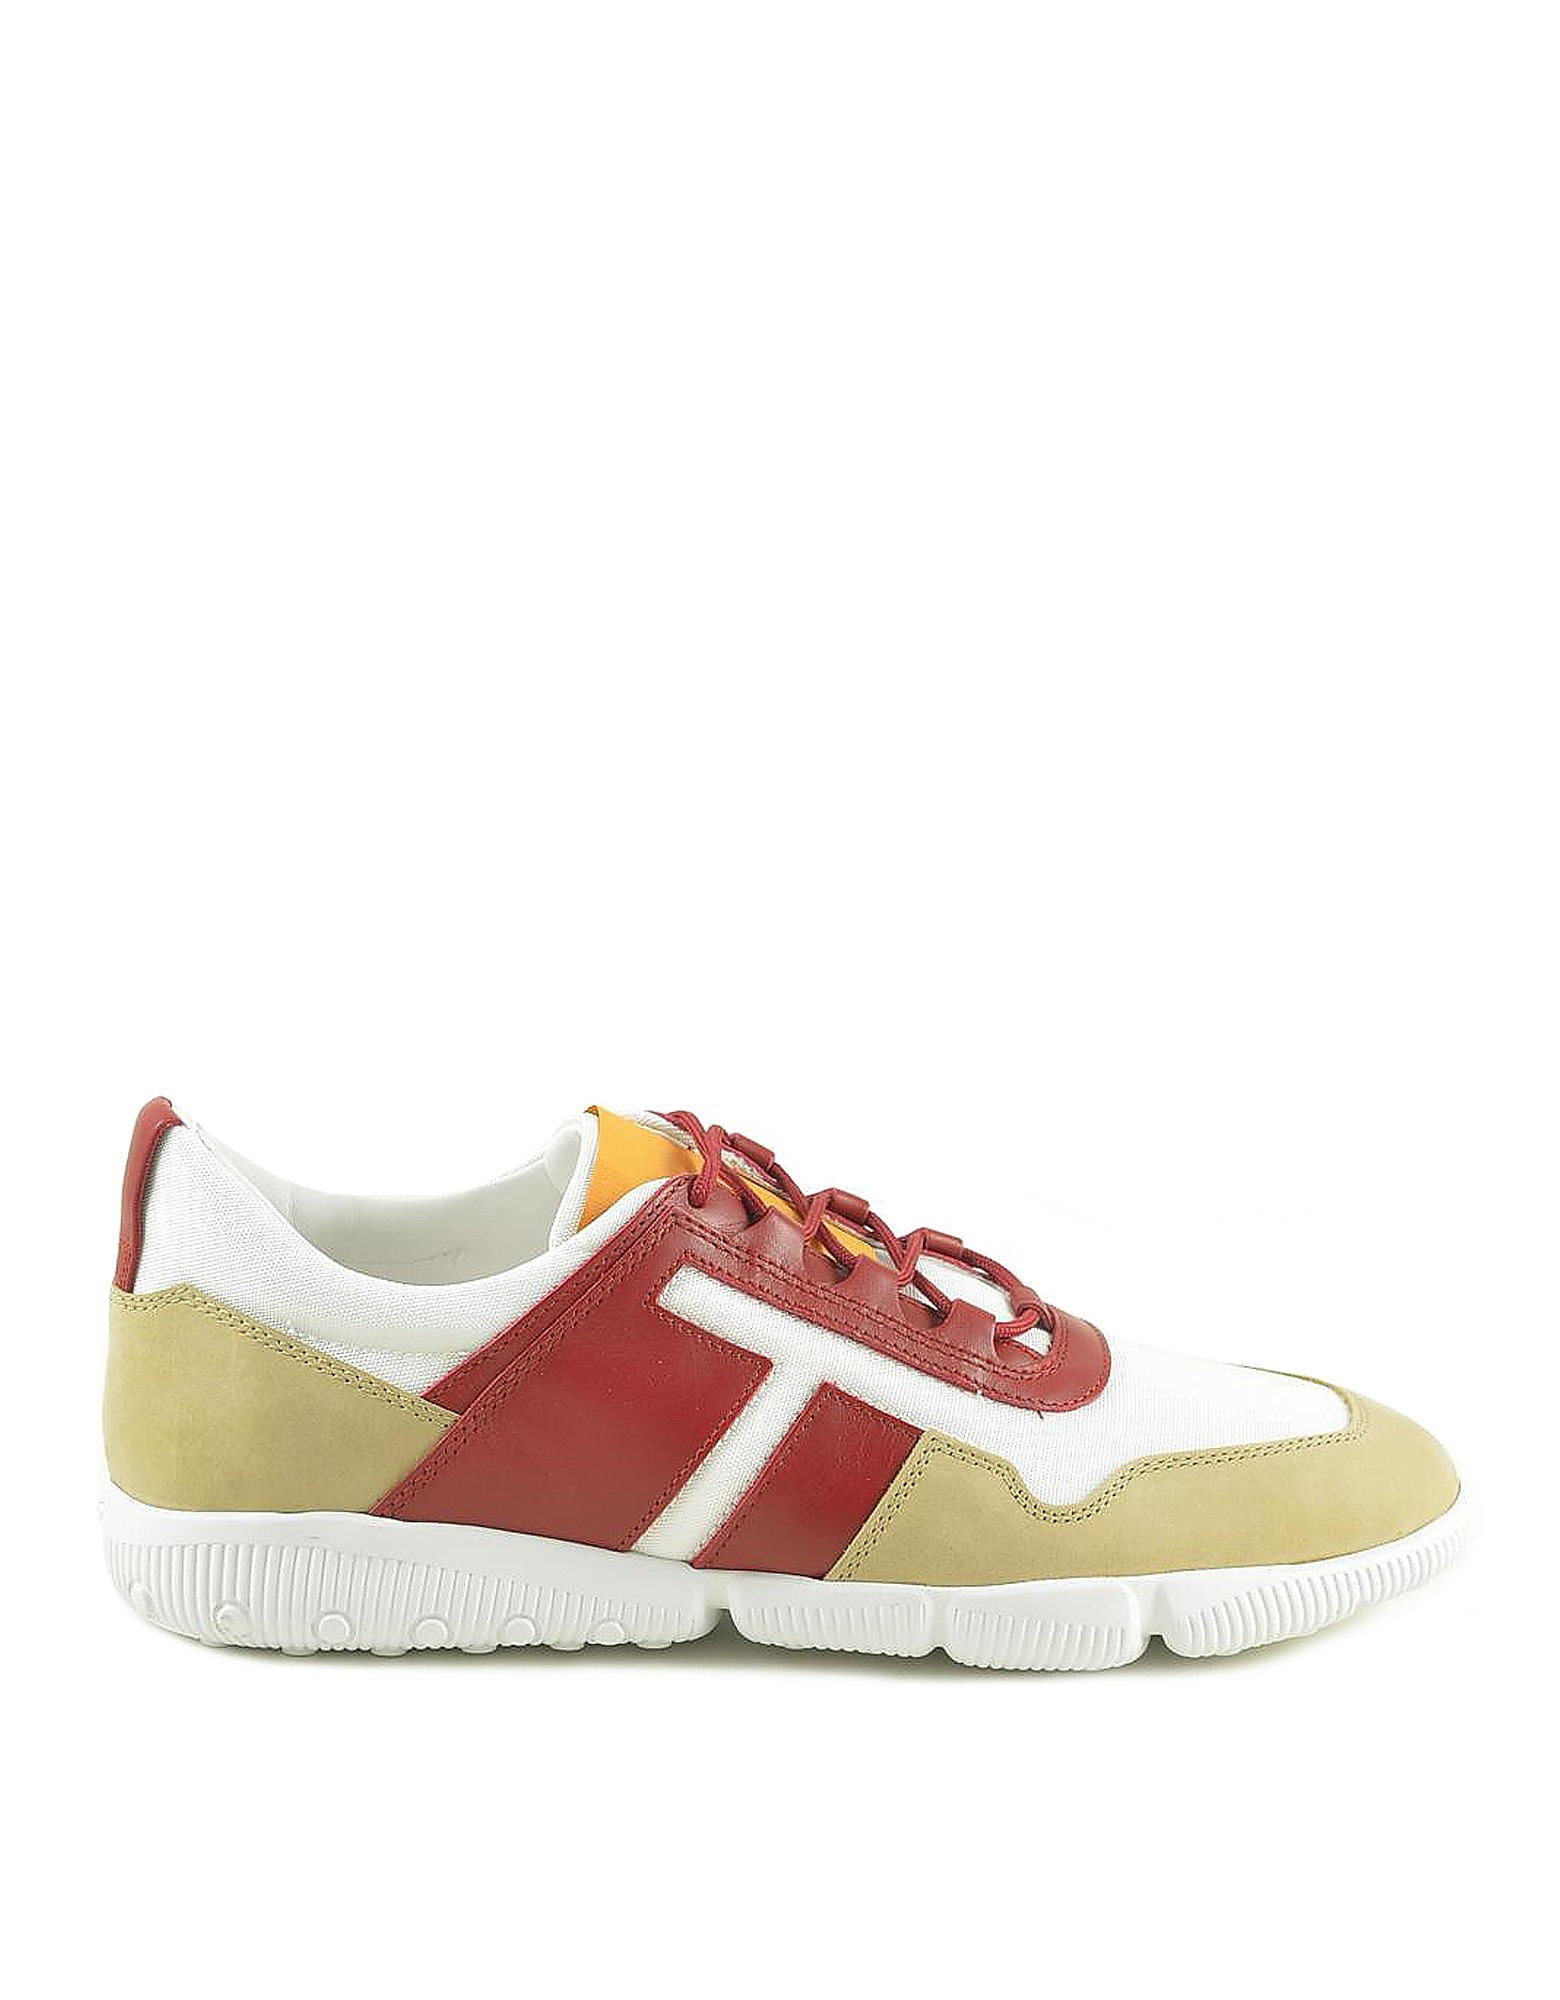 Tod's Designer Shoes, Men's Red Sneakers